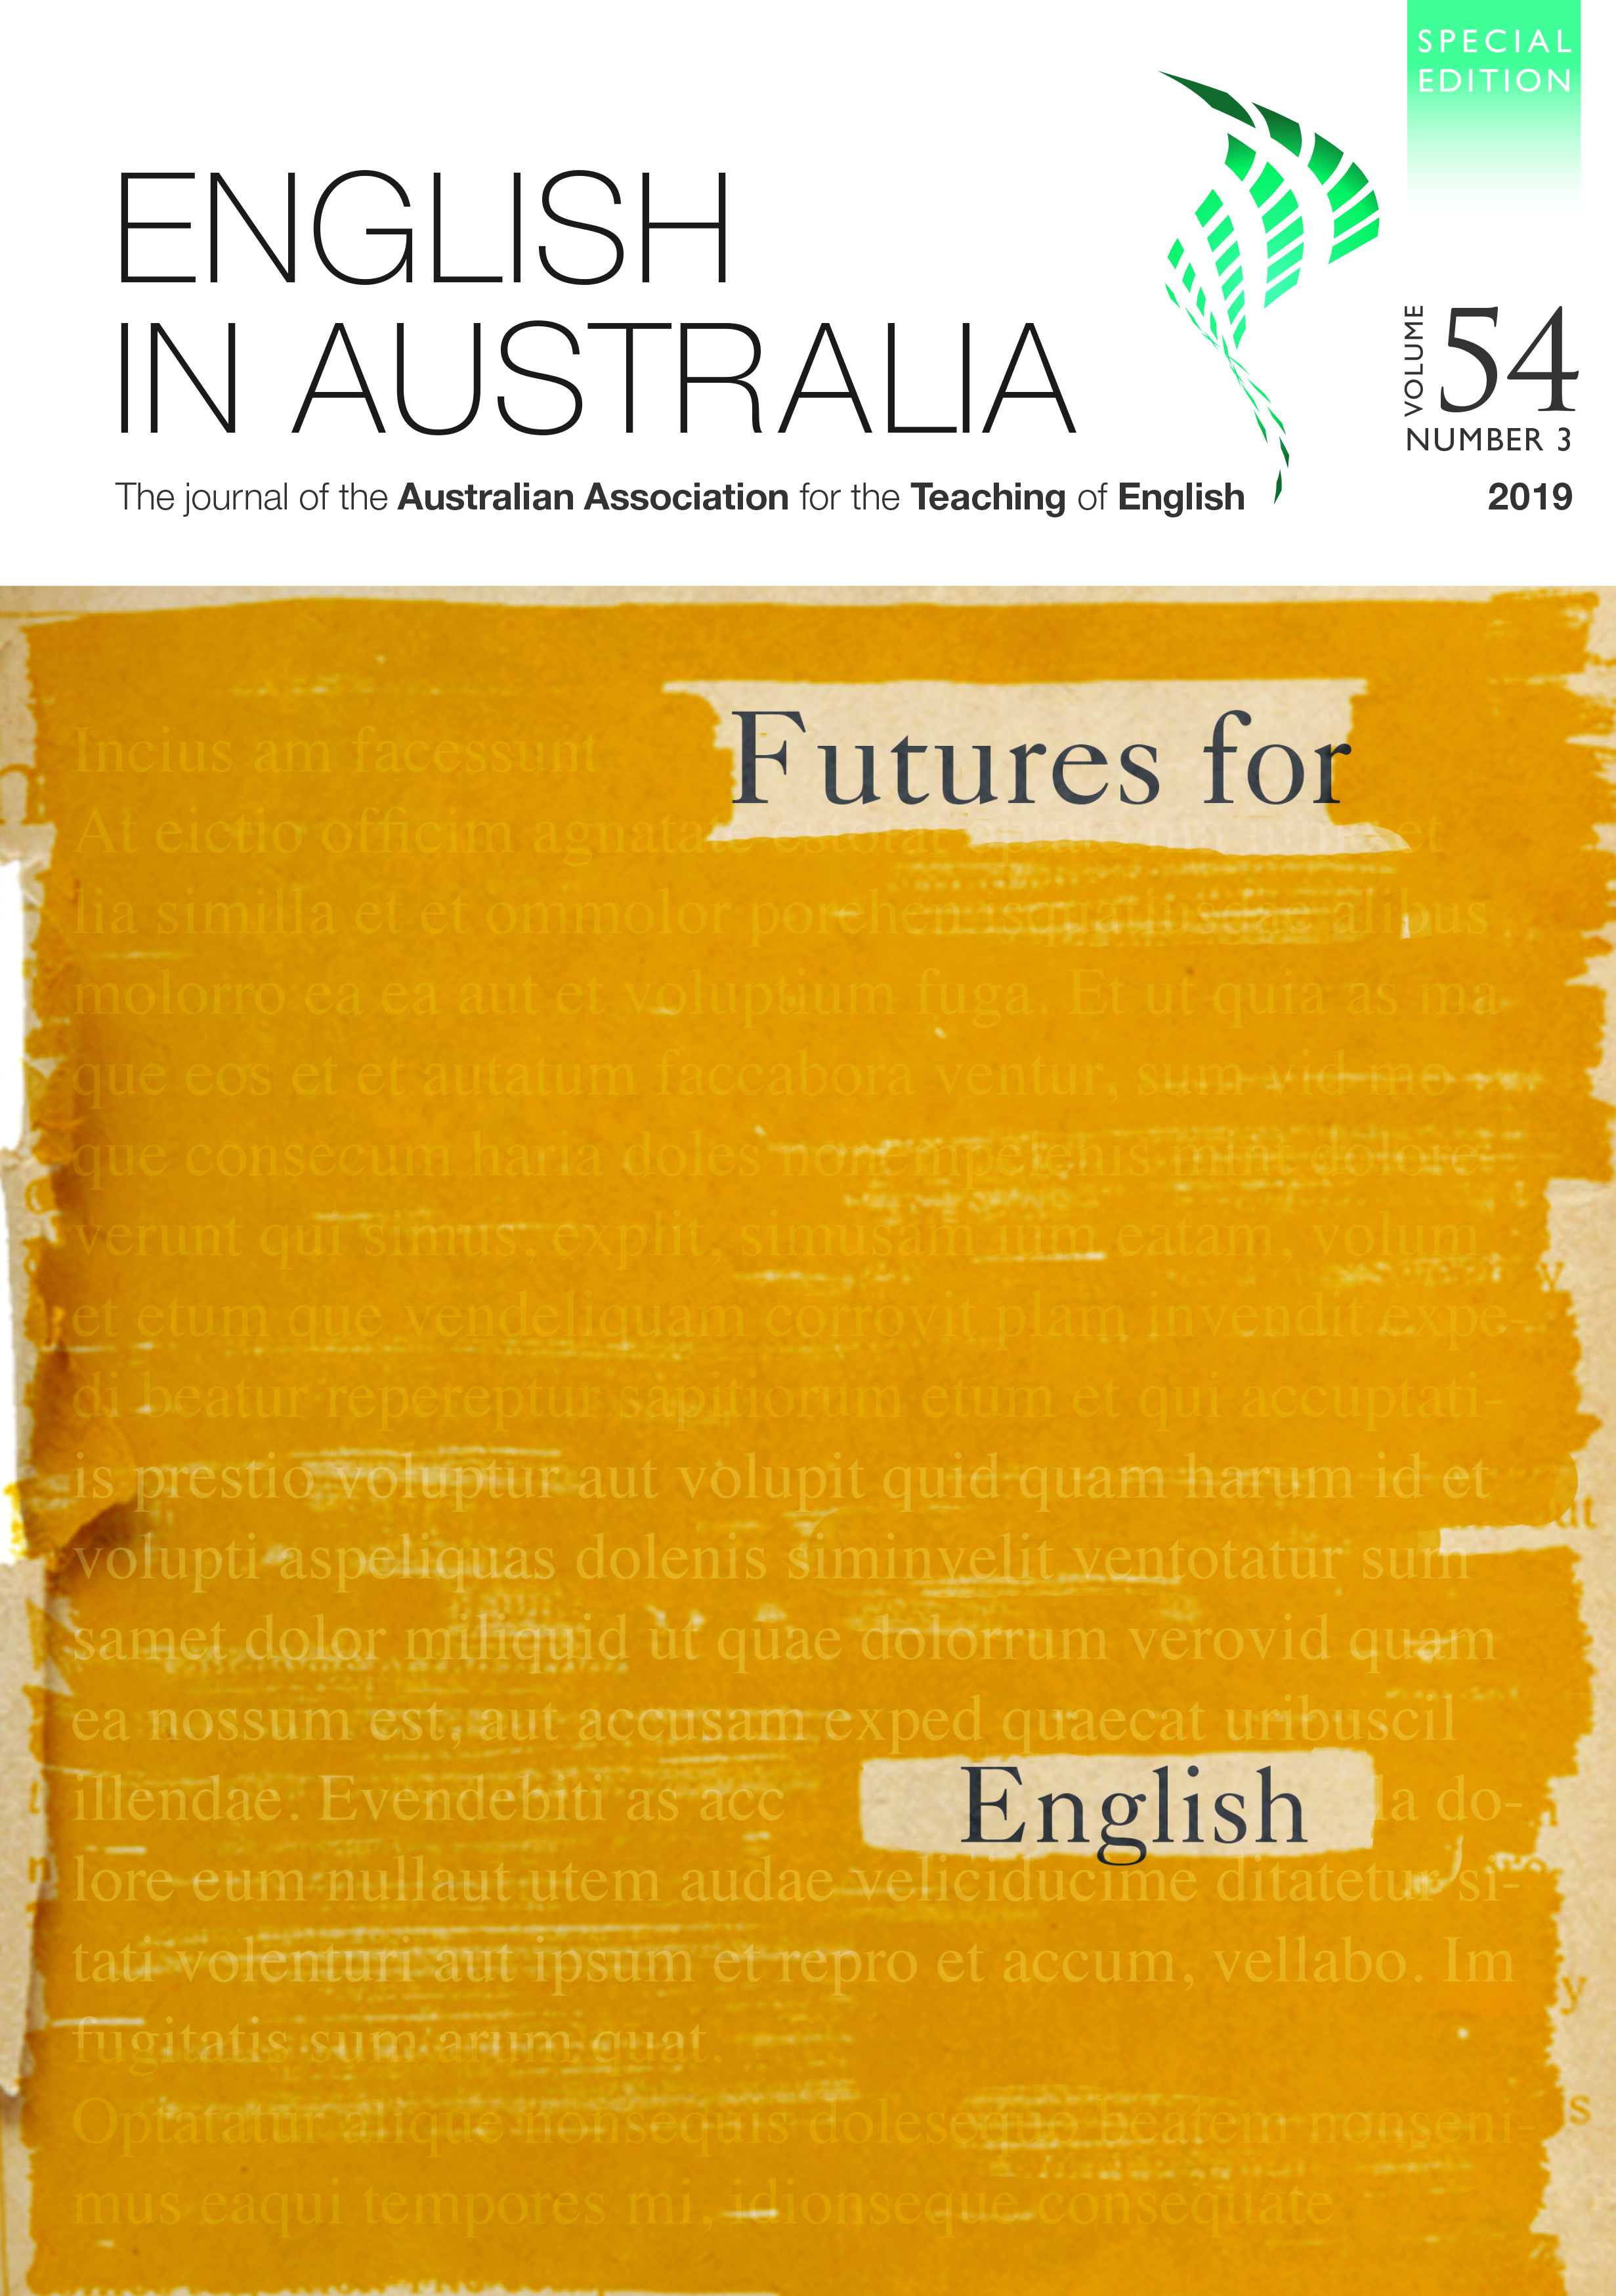 English In Australia Victorian Association For The Teaching Of English